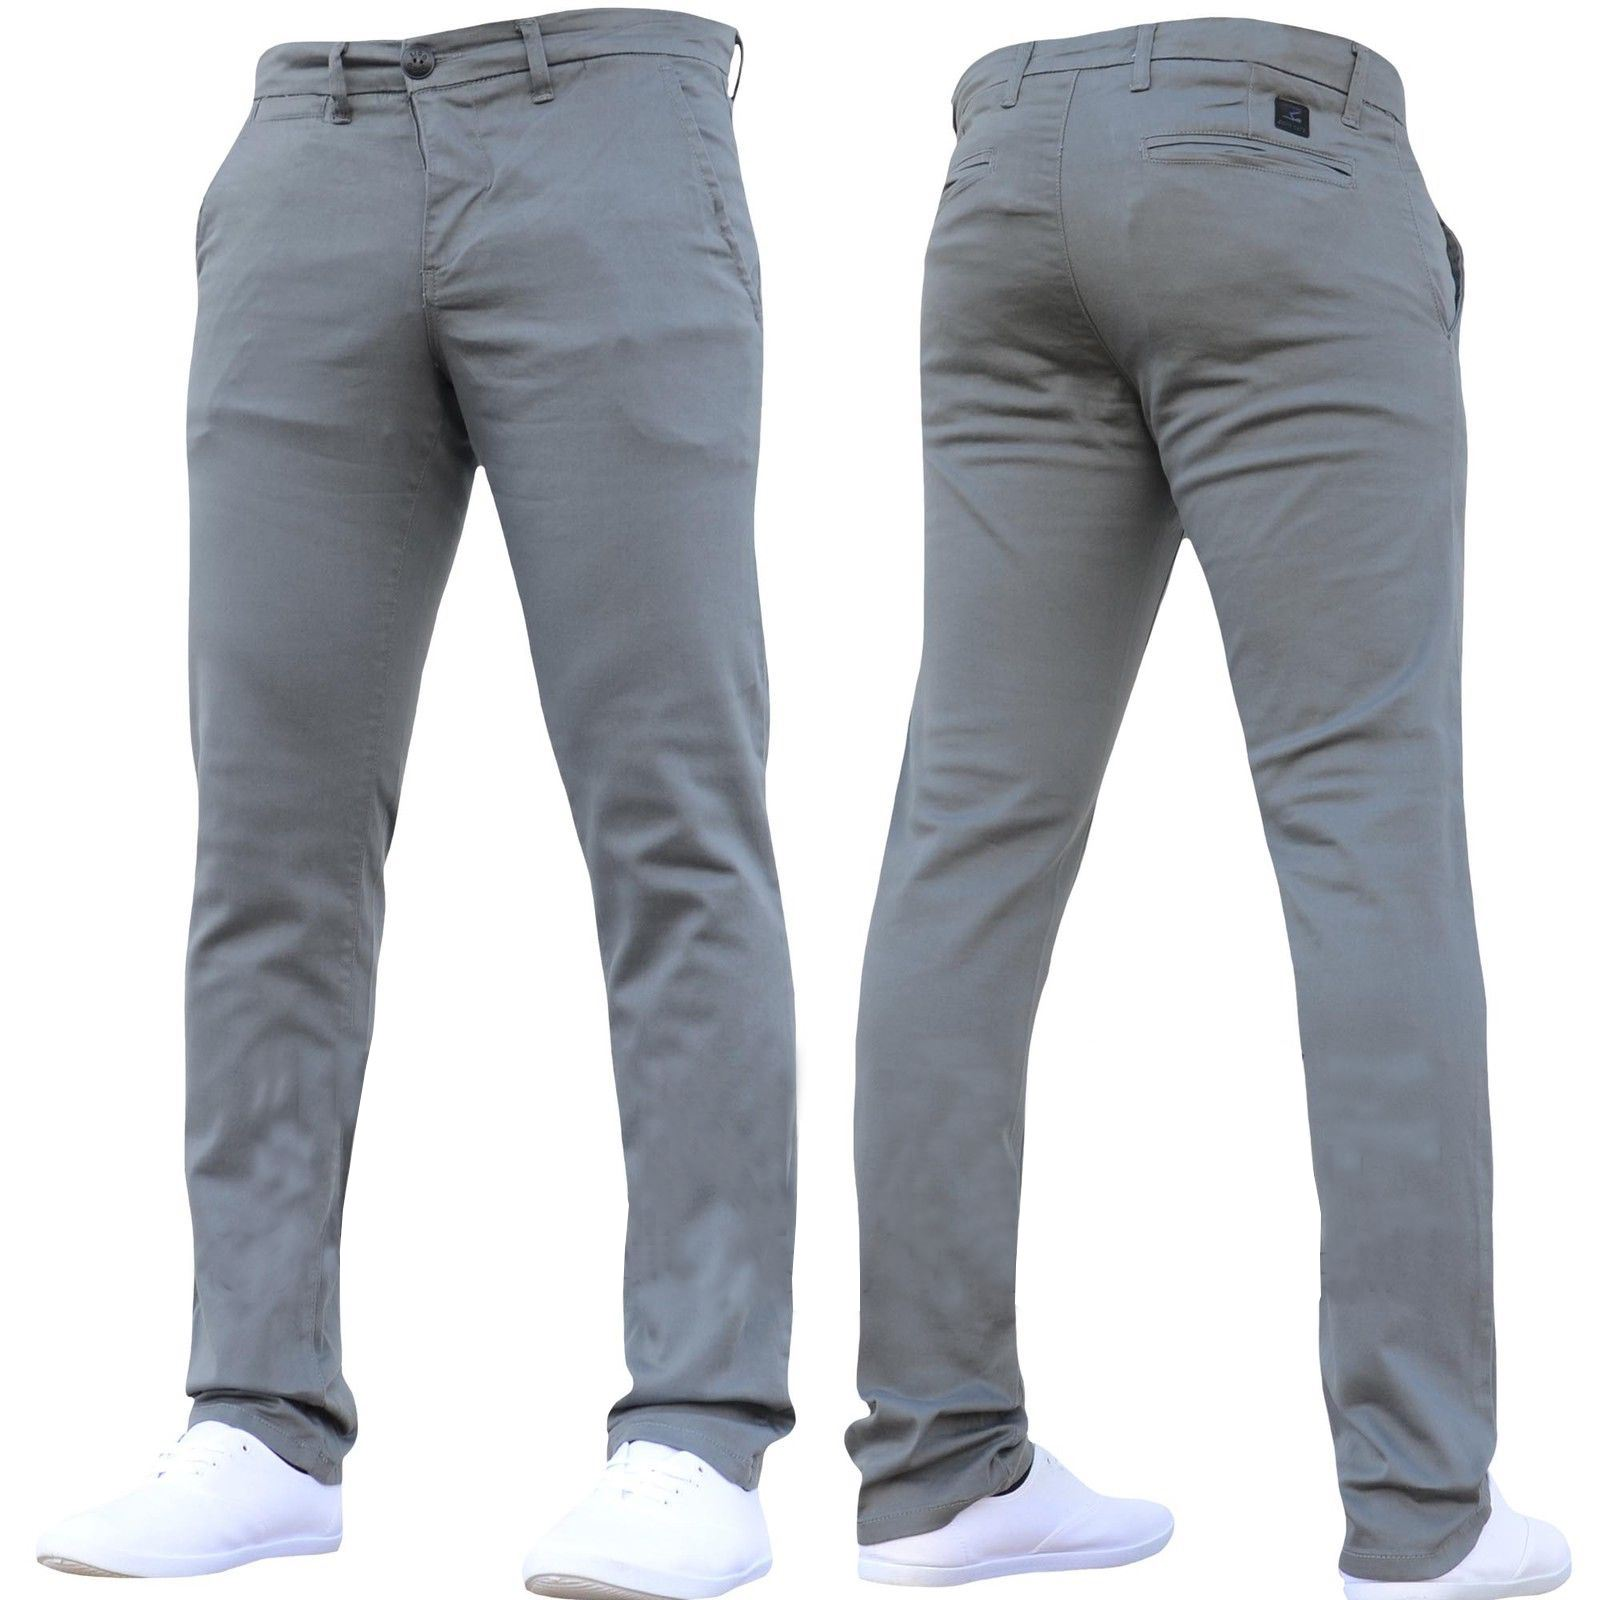 Online shopping for popular & hot Size 42 Skinny Jeans from Men's Clothing & Accessories, Jeans, Women's Clothing & Accessories, Jeans and more related Size 42 Skinny Jeans like ripped jeans size 44, size 44 ripped jeans, denim jeans size 42, size 10 skinny jeans.